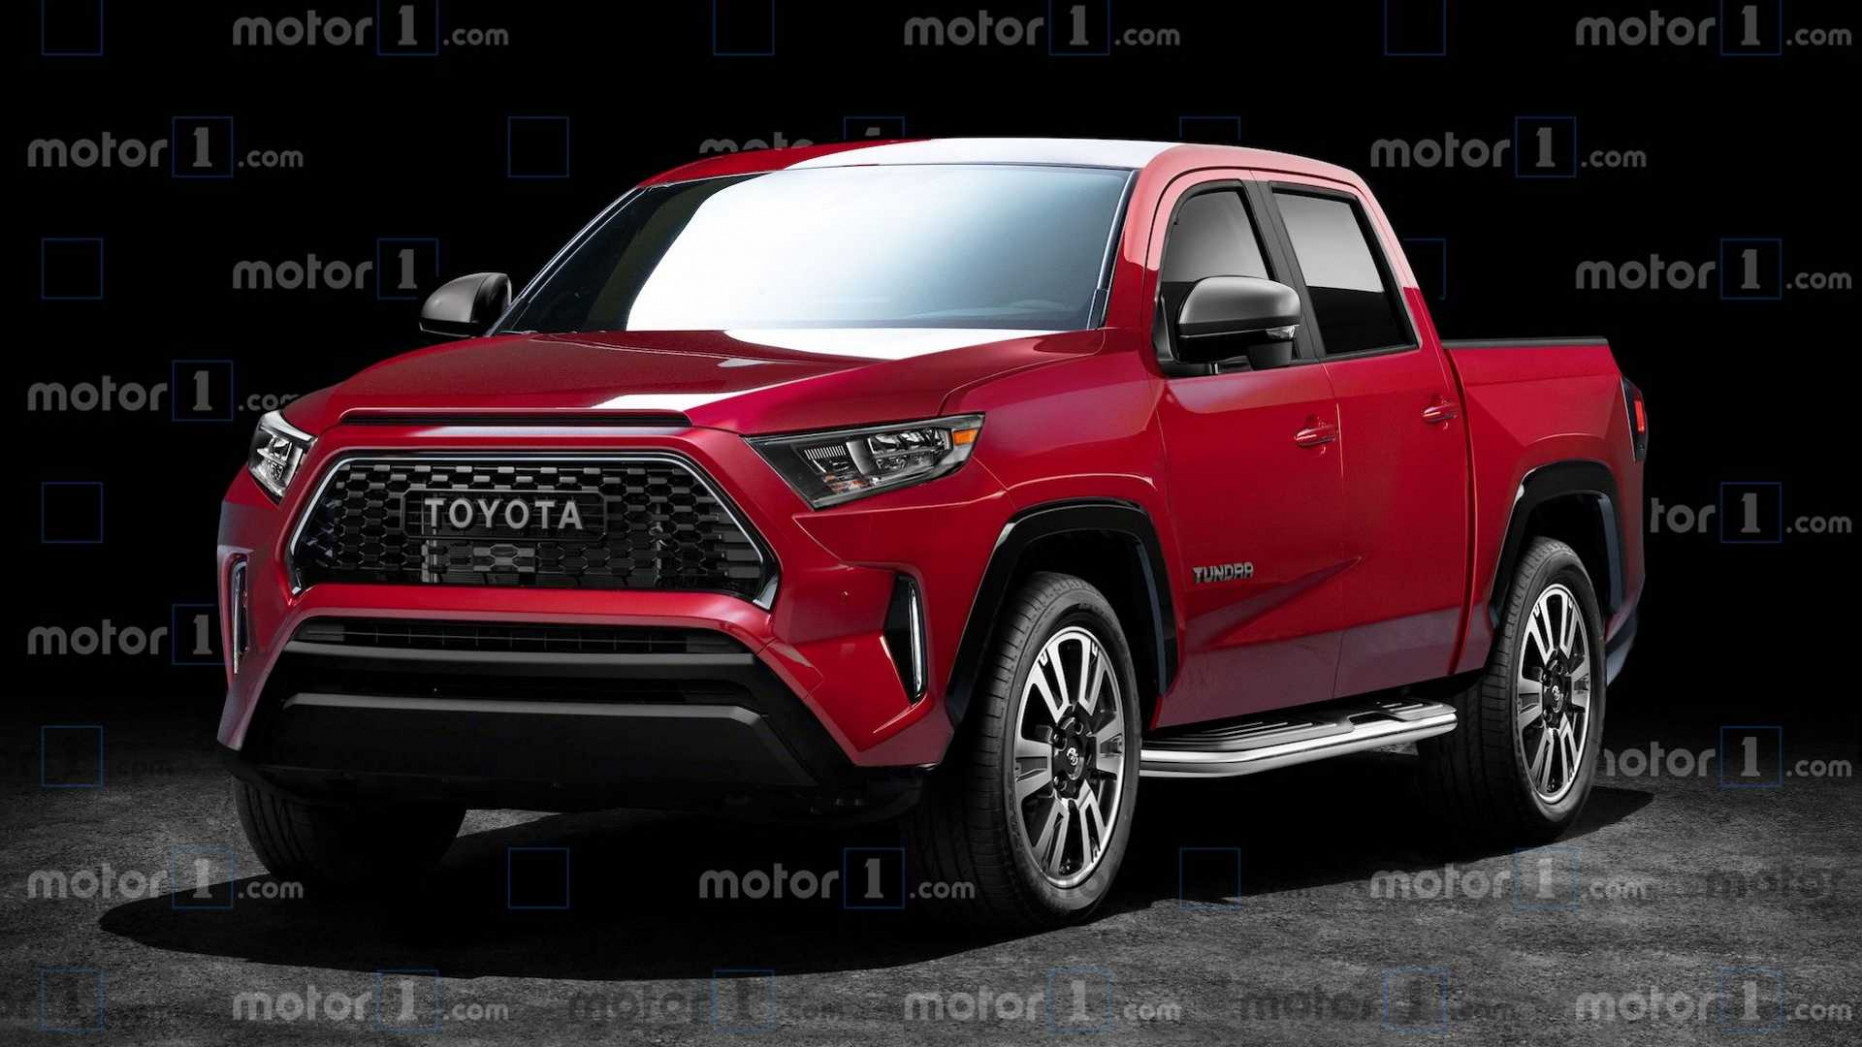 Exterior and Interior 2022 Toyota Tacoma Diesel